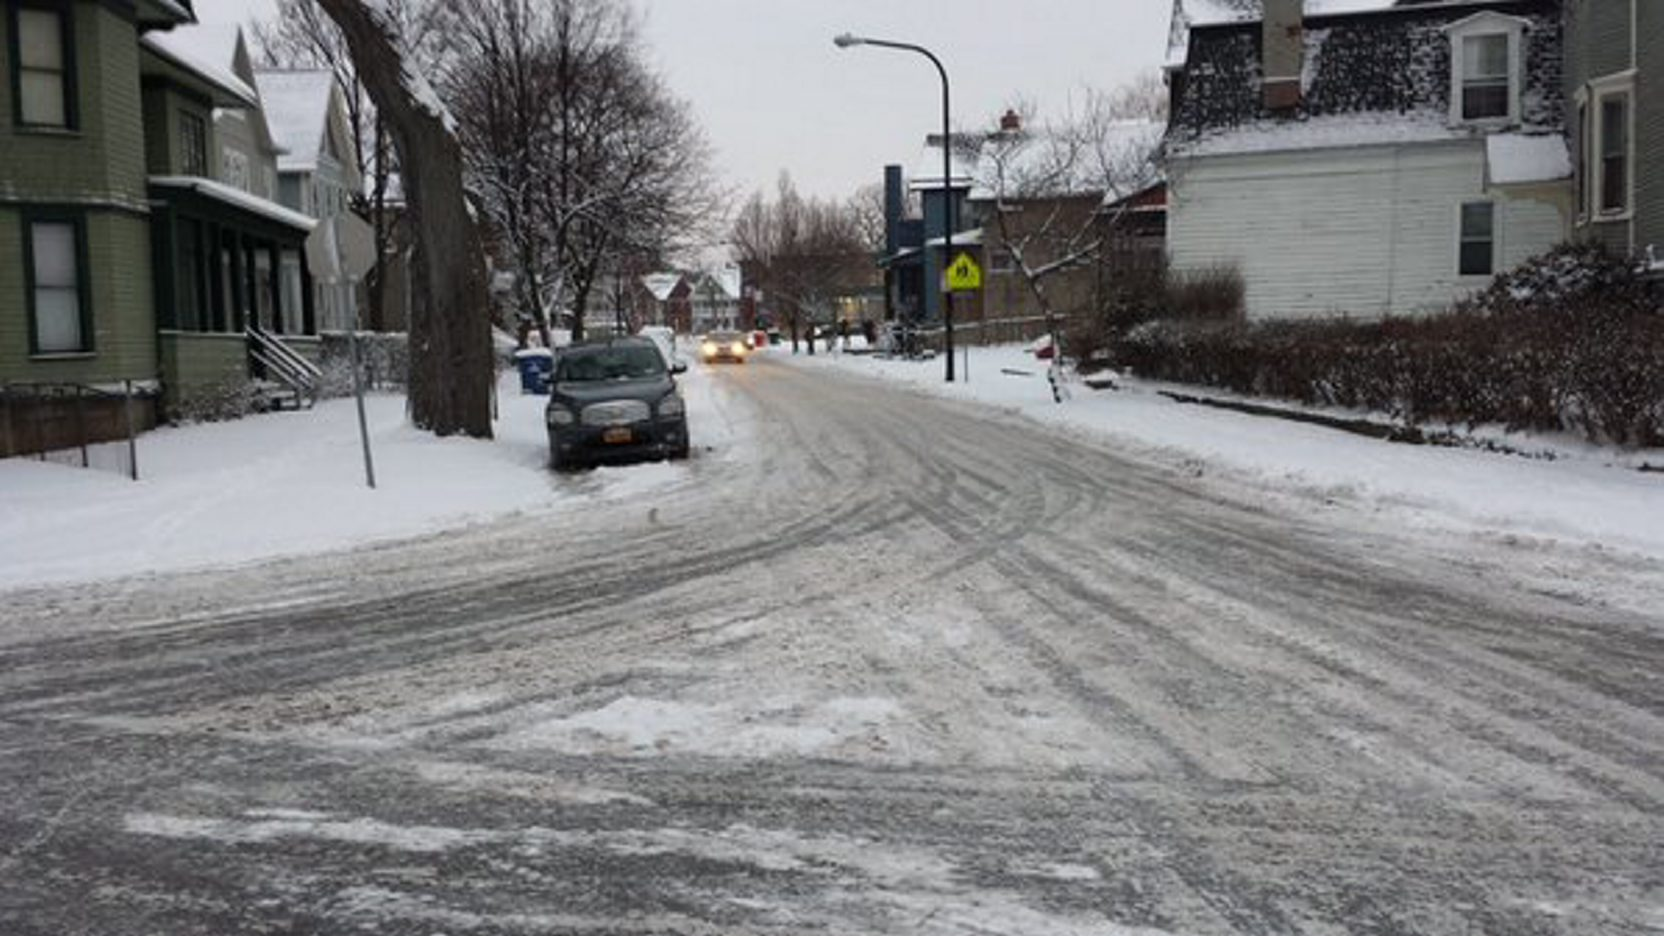 The streets in Allentown on Thursday morning. (Buffalo News)